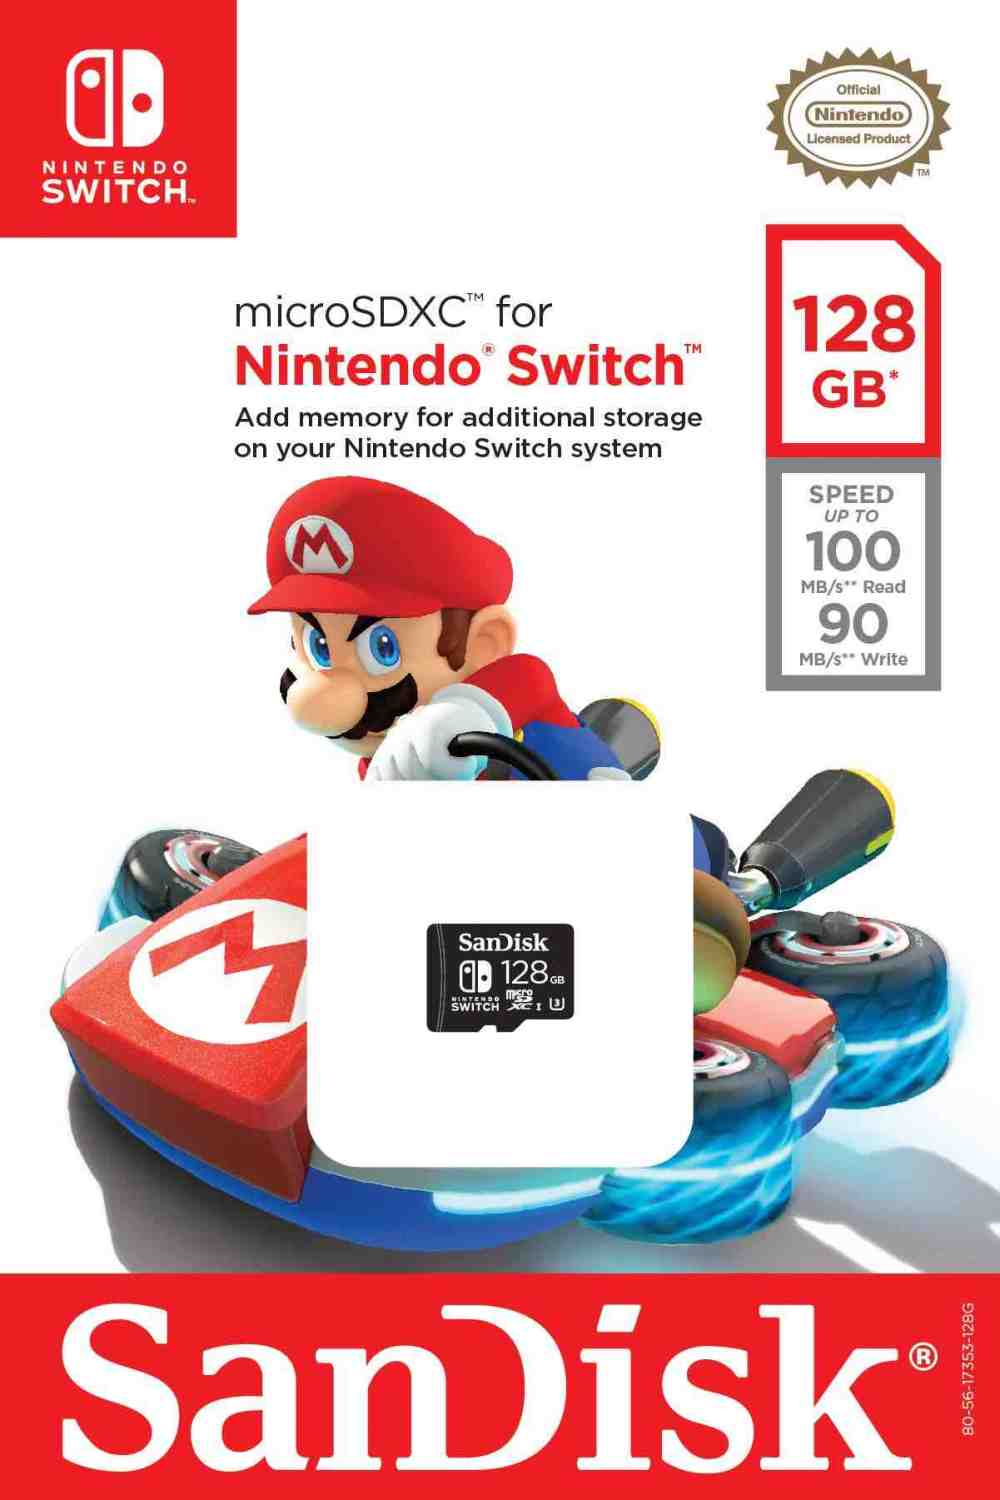 microsdxc-card-nintendo-switch-128-gb-image